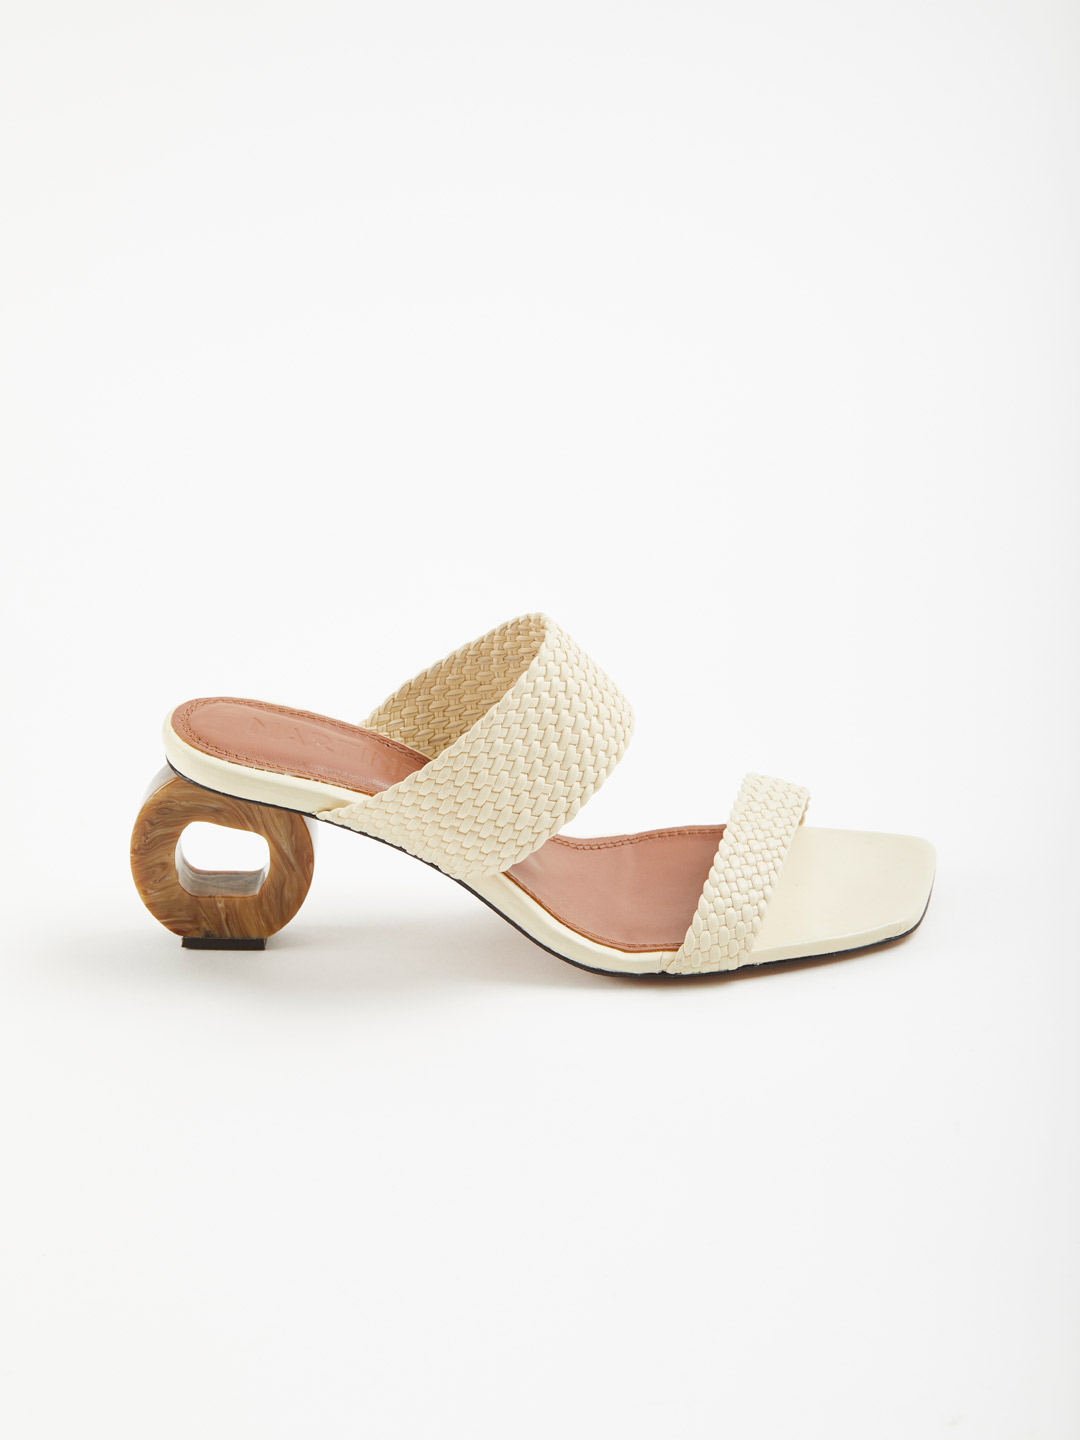 Limon Heel Sandals - Offwhite